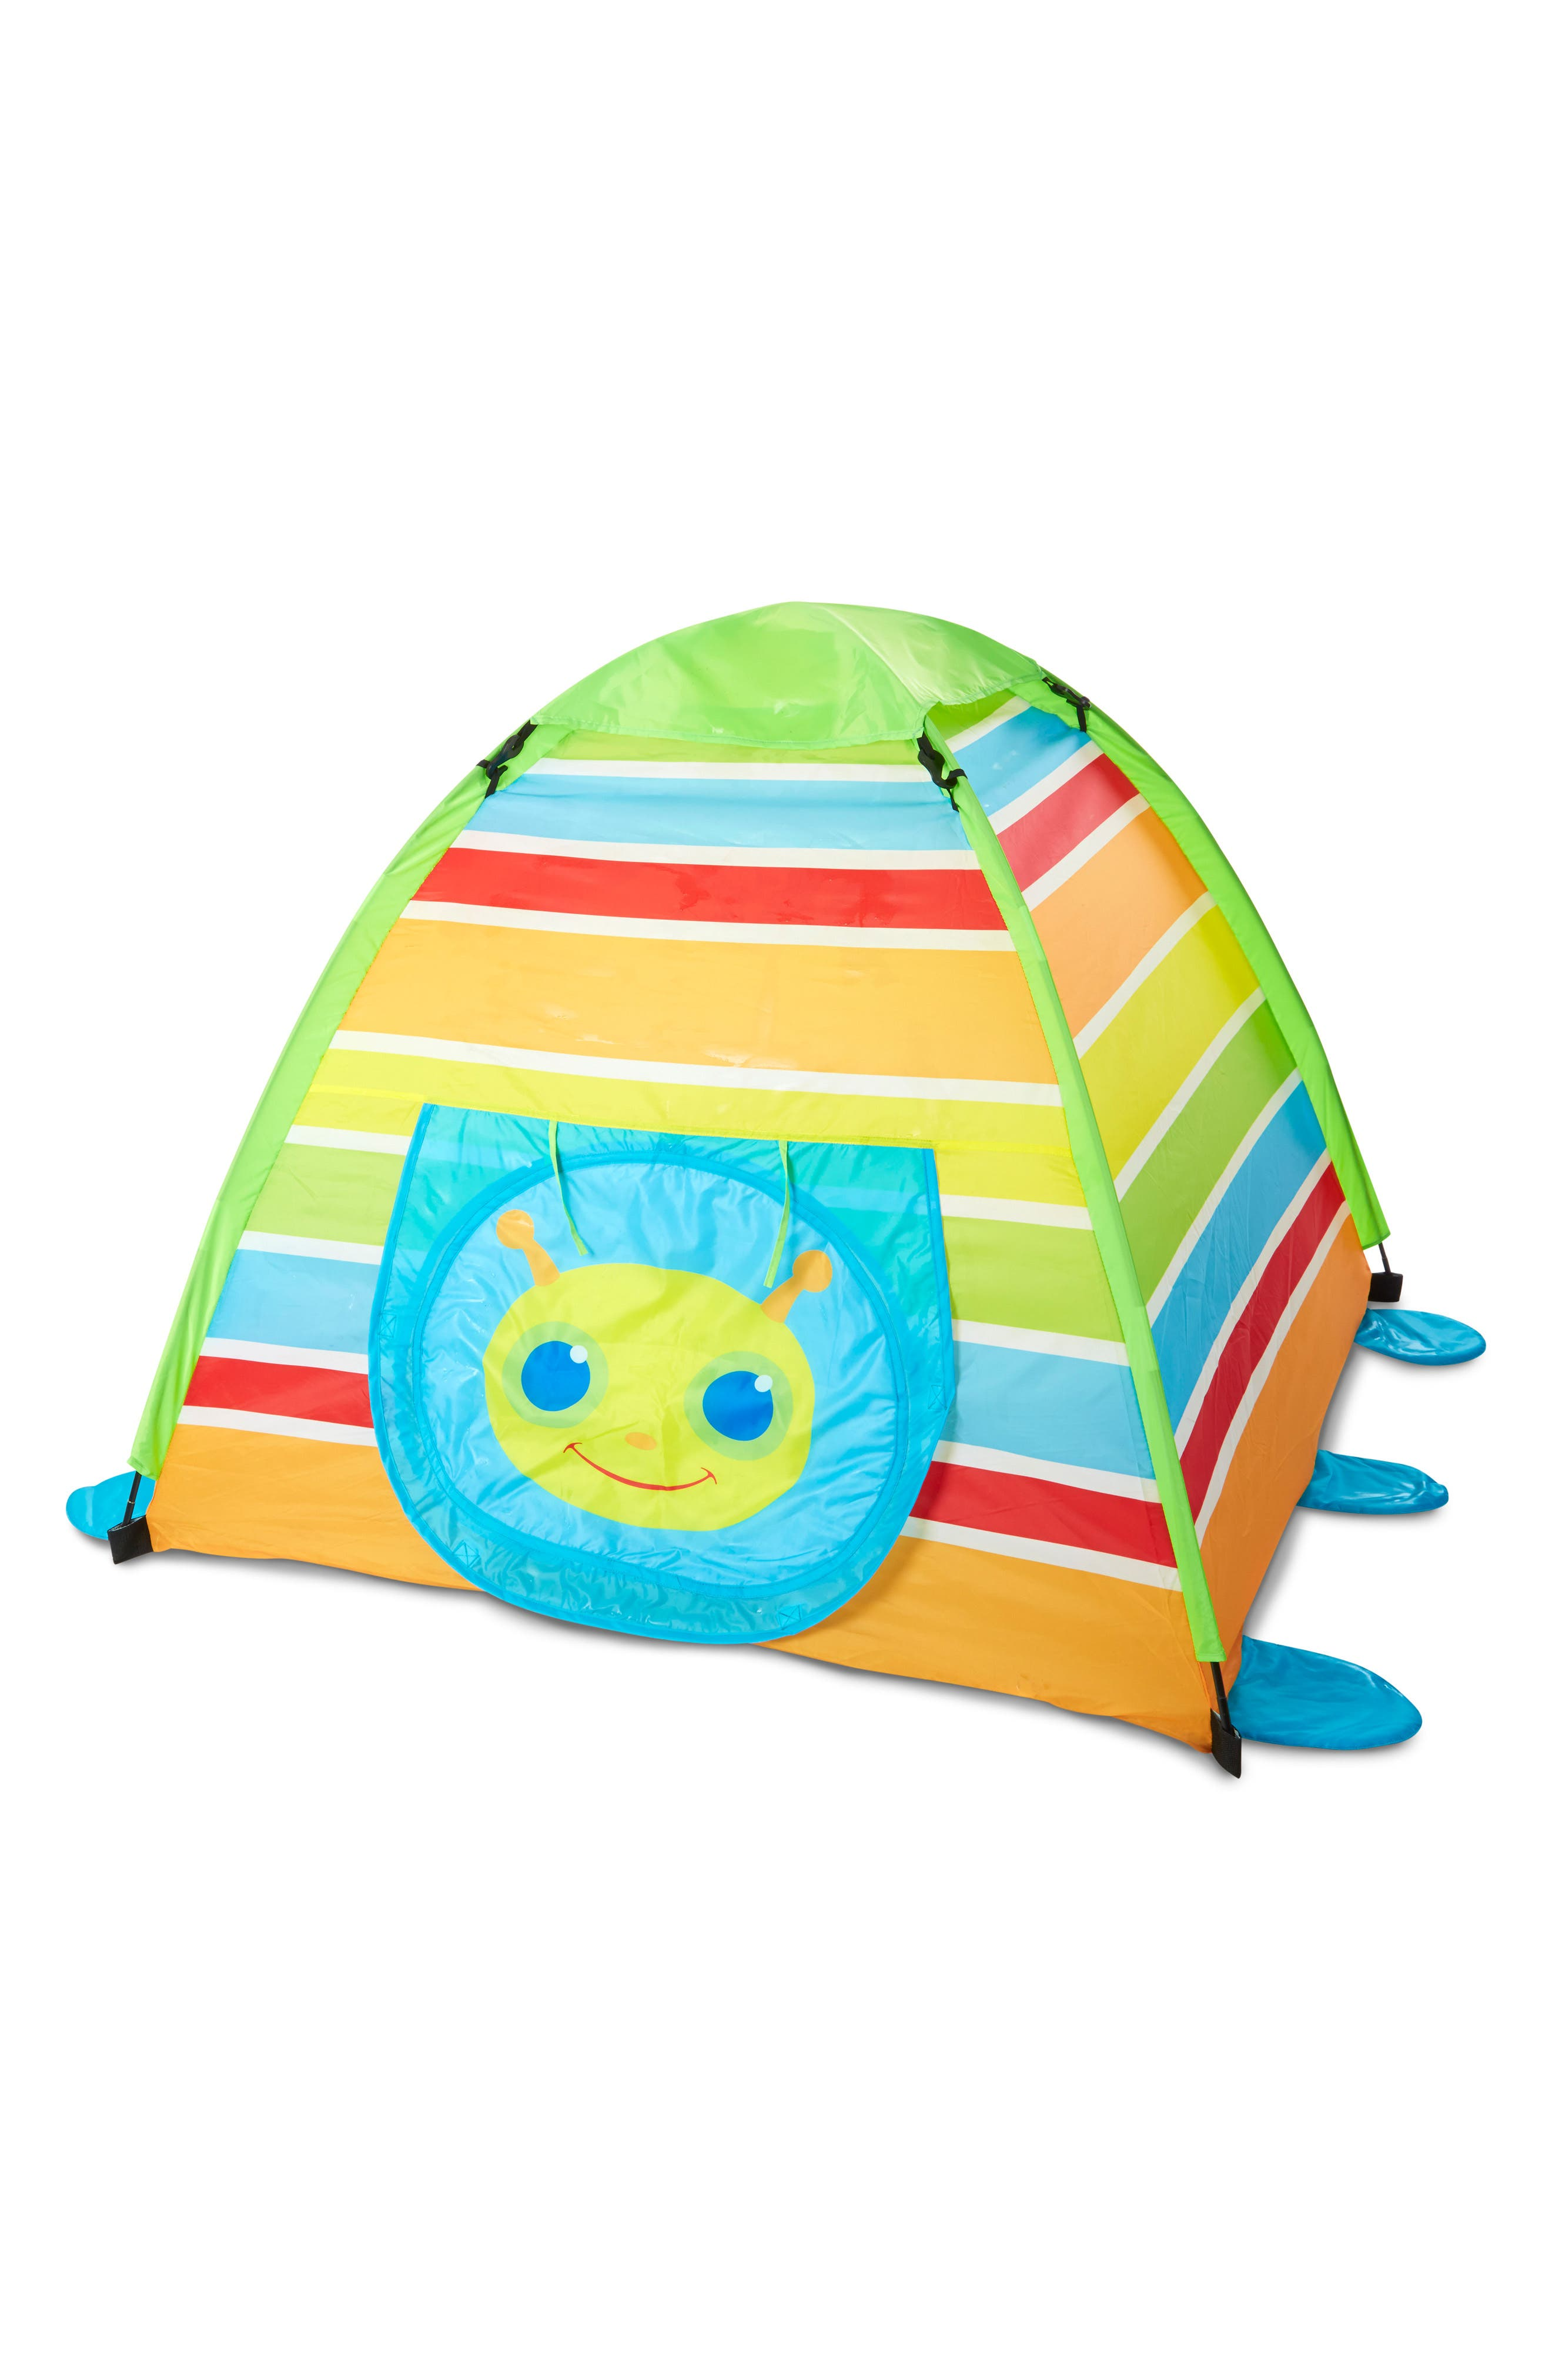 Giddy Buggy Tent,                         Main,                         color, 300